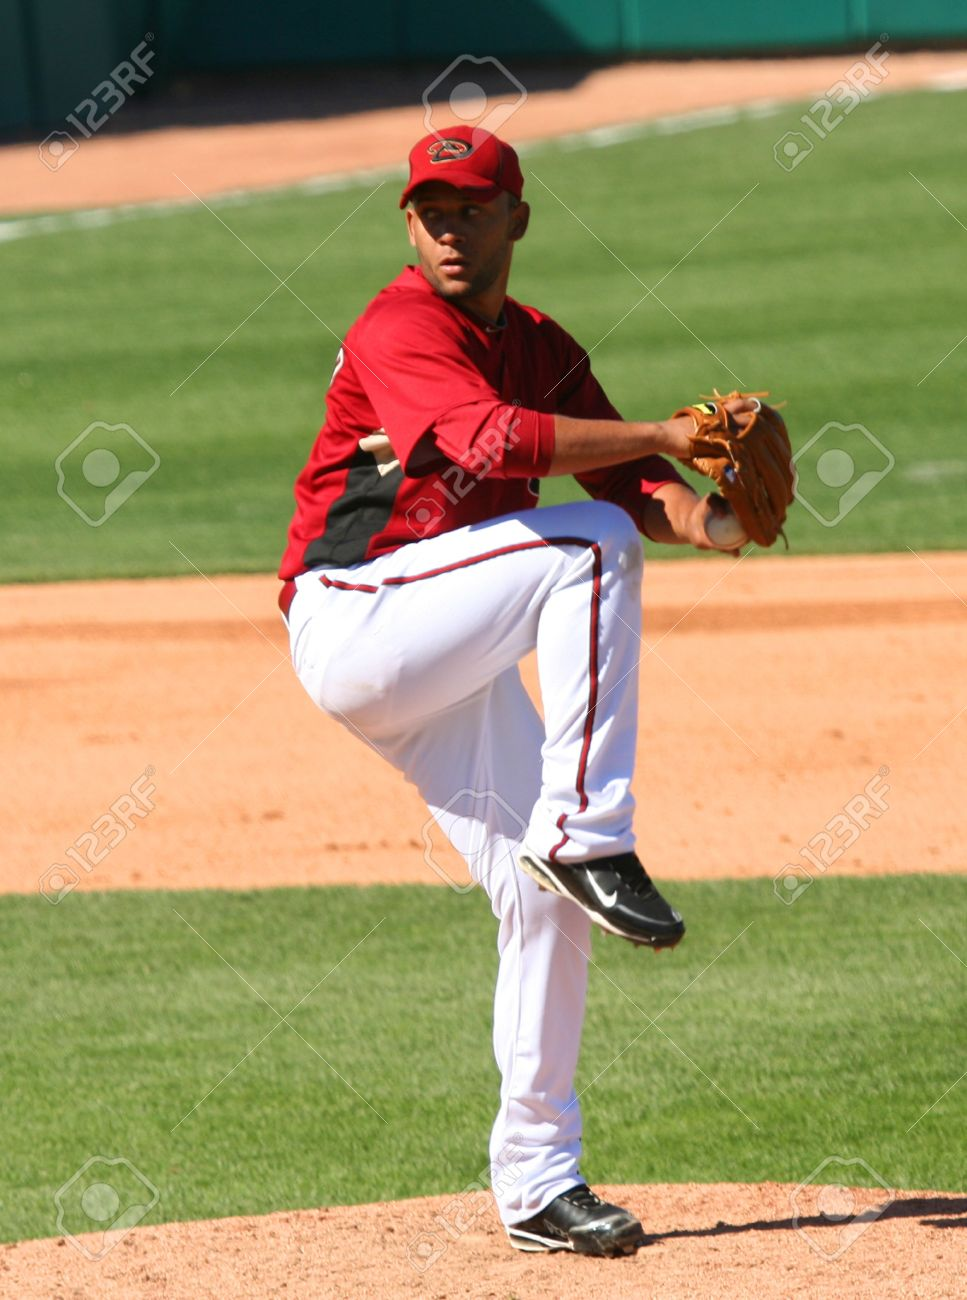 Jordan Norberto pitches in an Arizona Diamondbacks game against the Los Angeles Angels on March 11, 2010, at Tucson Electric Park in Tucson, Arizona, during spring training. Stock Photo - 6890938